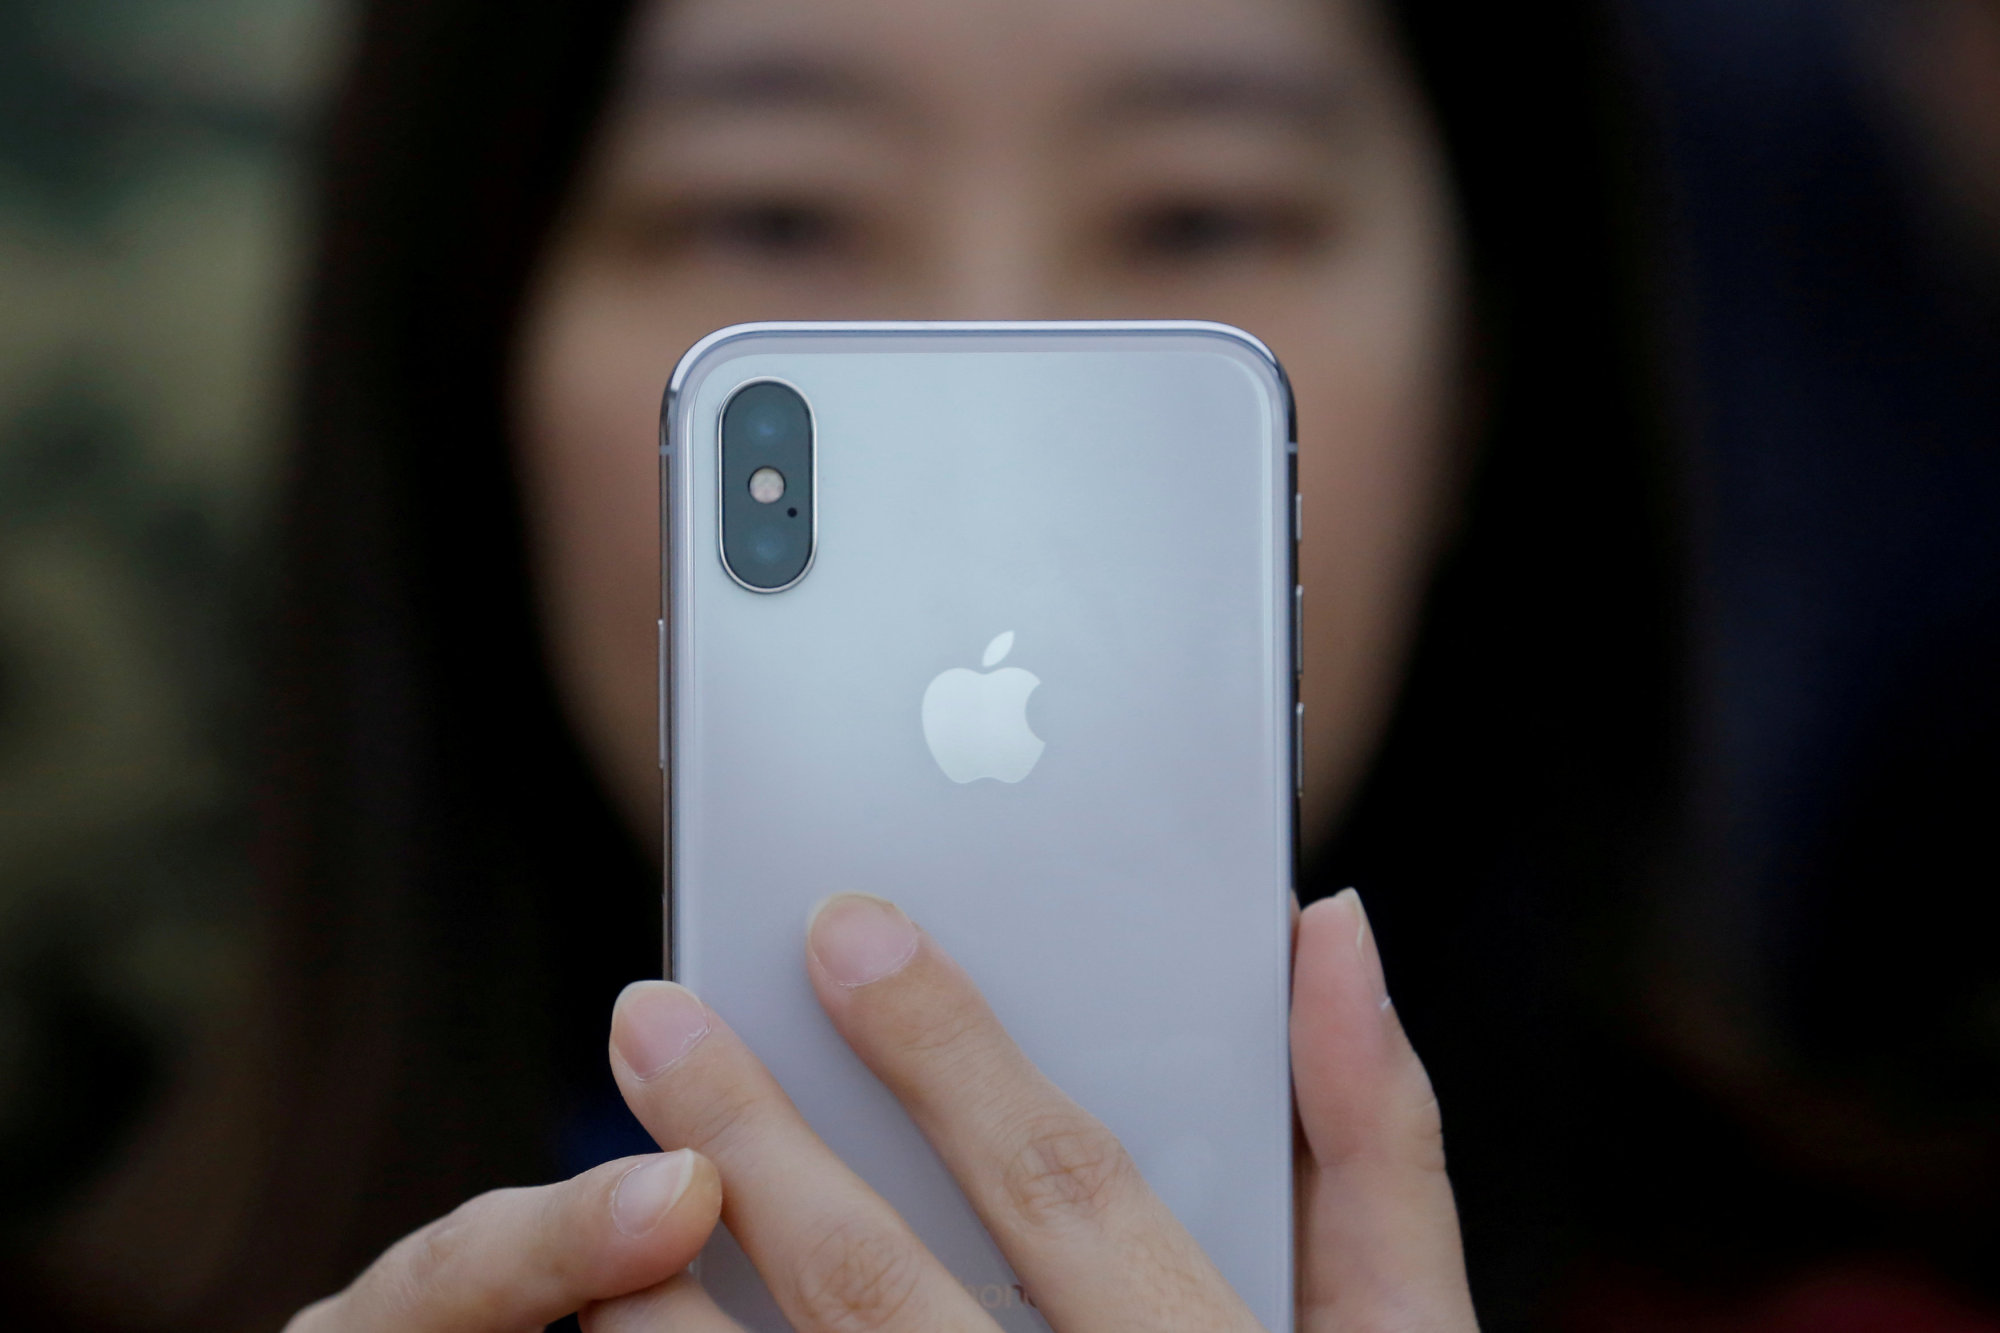 An attendee uses a new iPhone X during a presentation for the media in Beijing on Oct. 31. | REUTERS